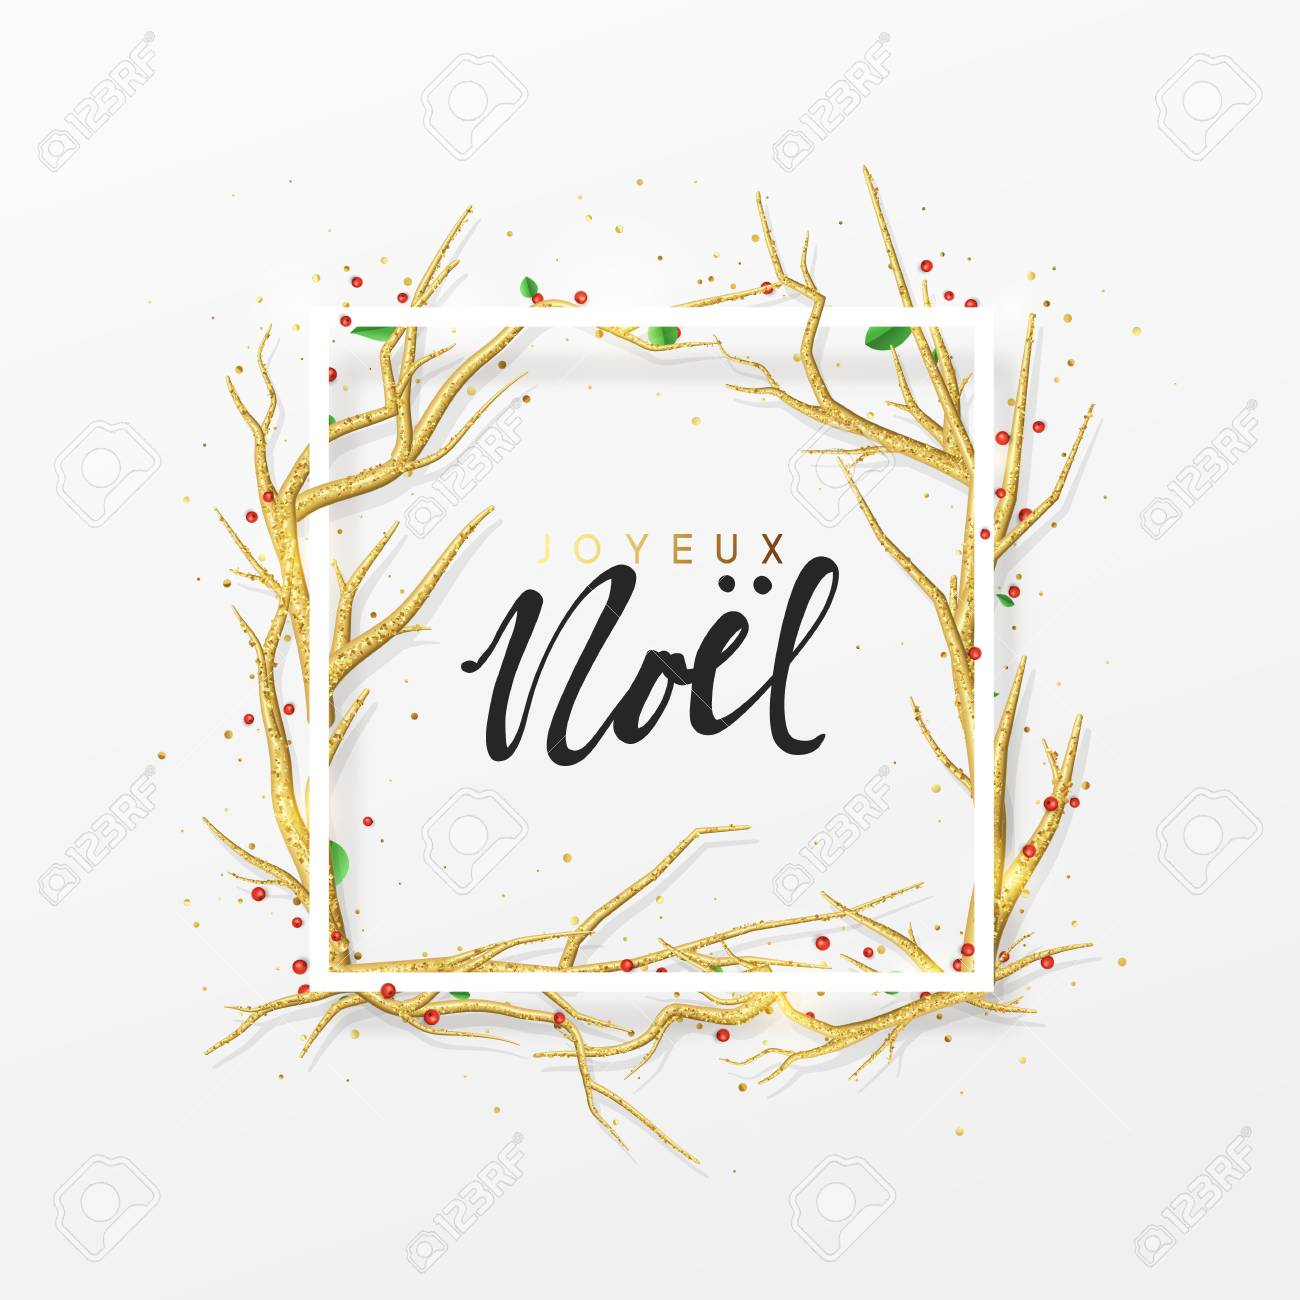 French Text Joyeux Noel. Merry Christmas Greeting Cards. Xmas ...